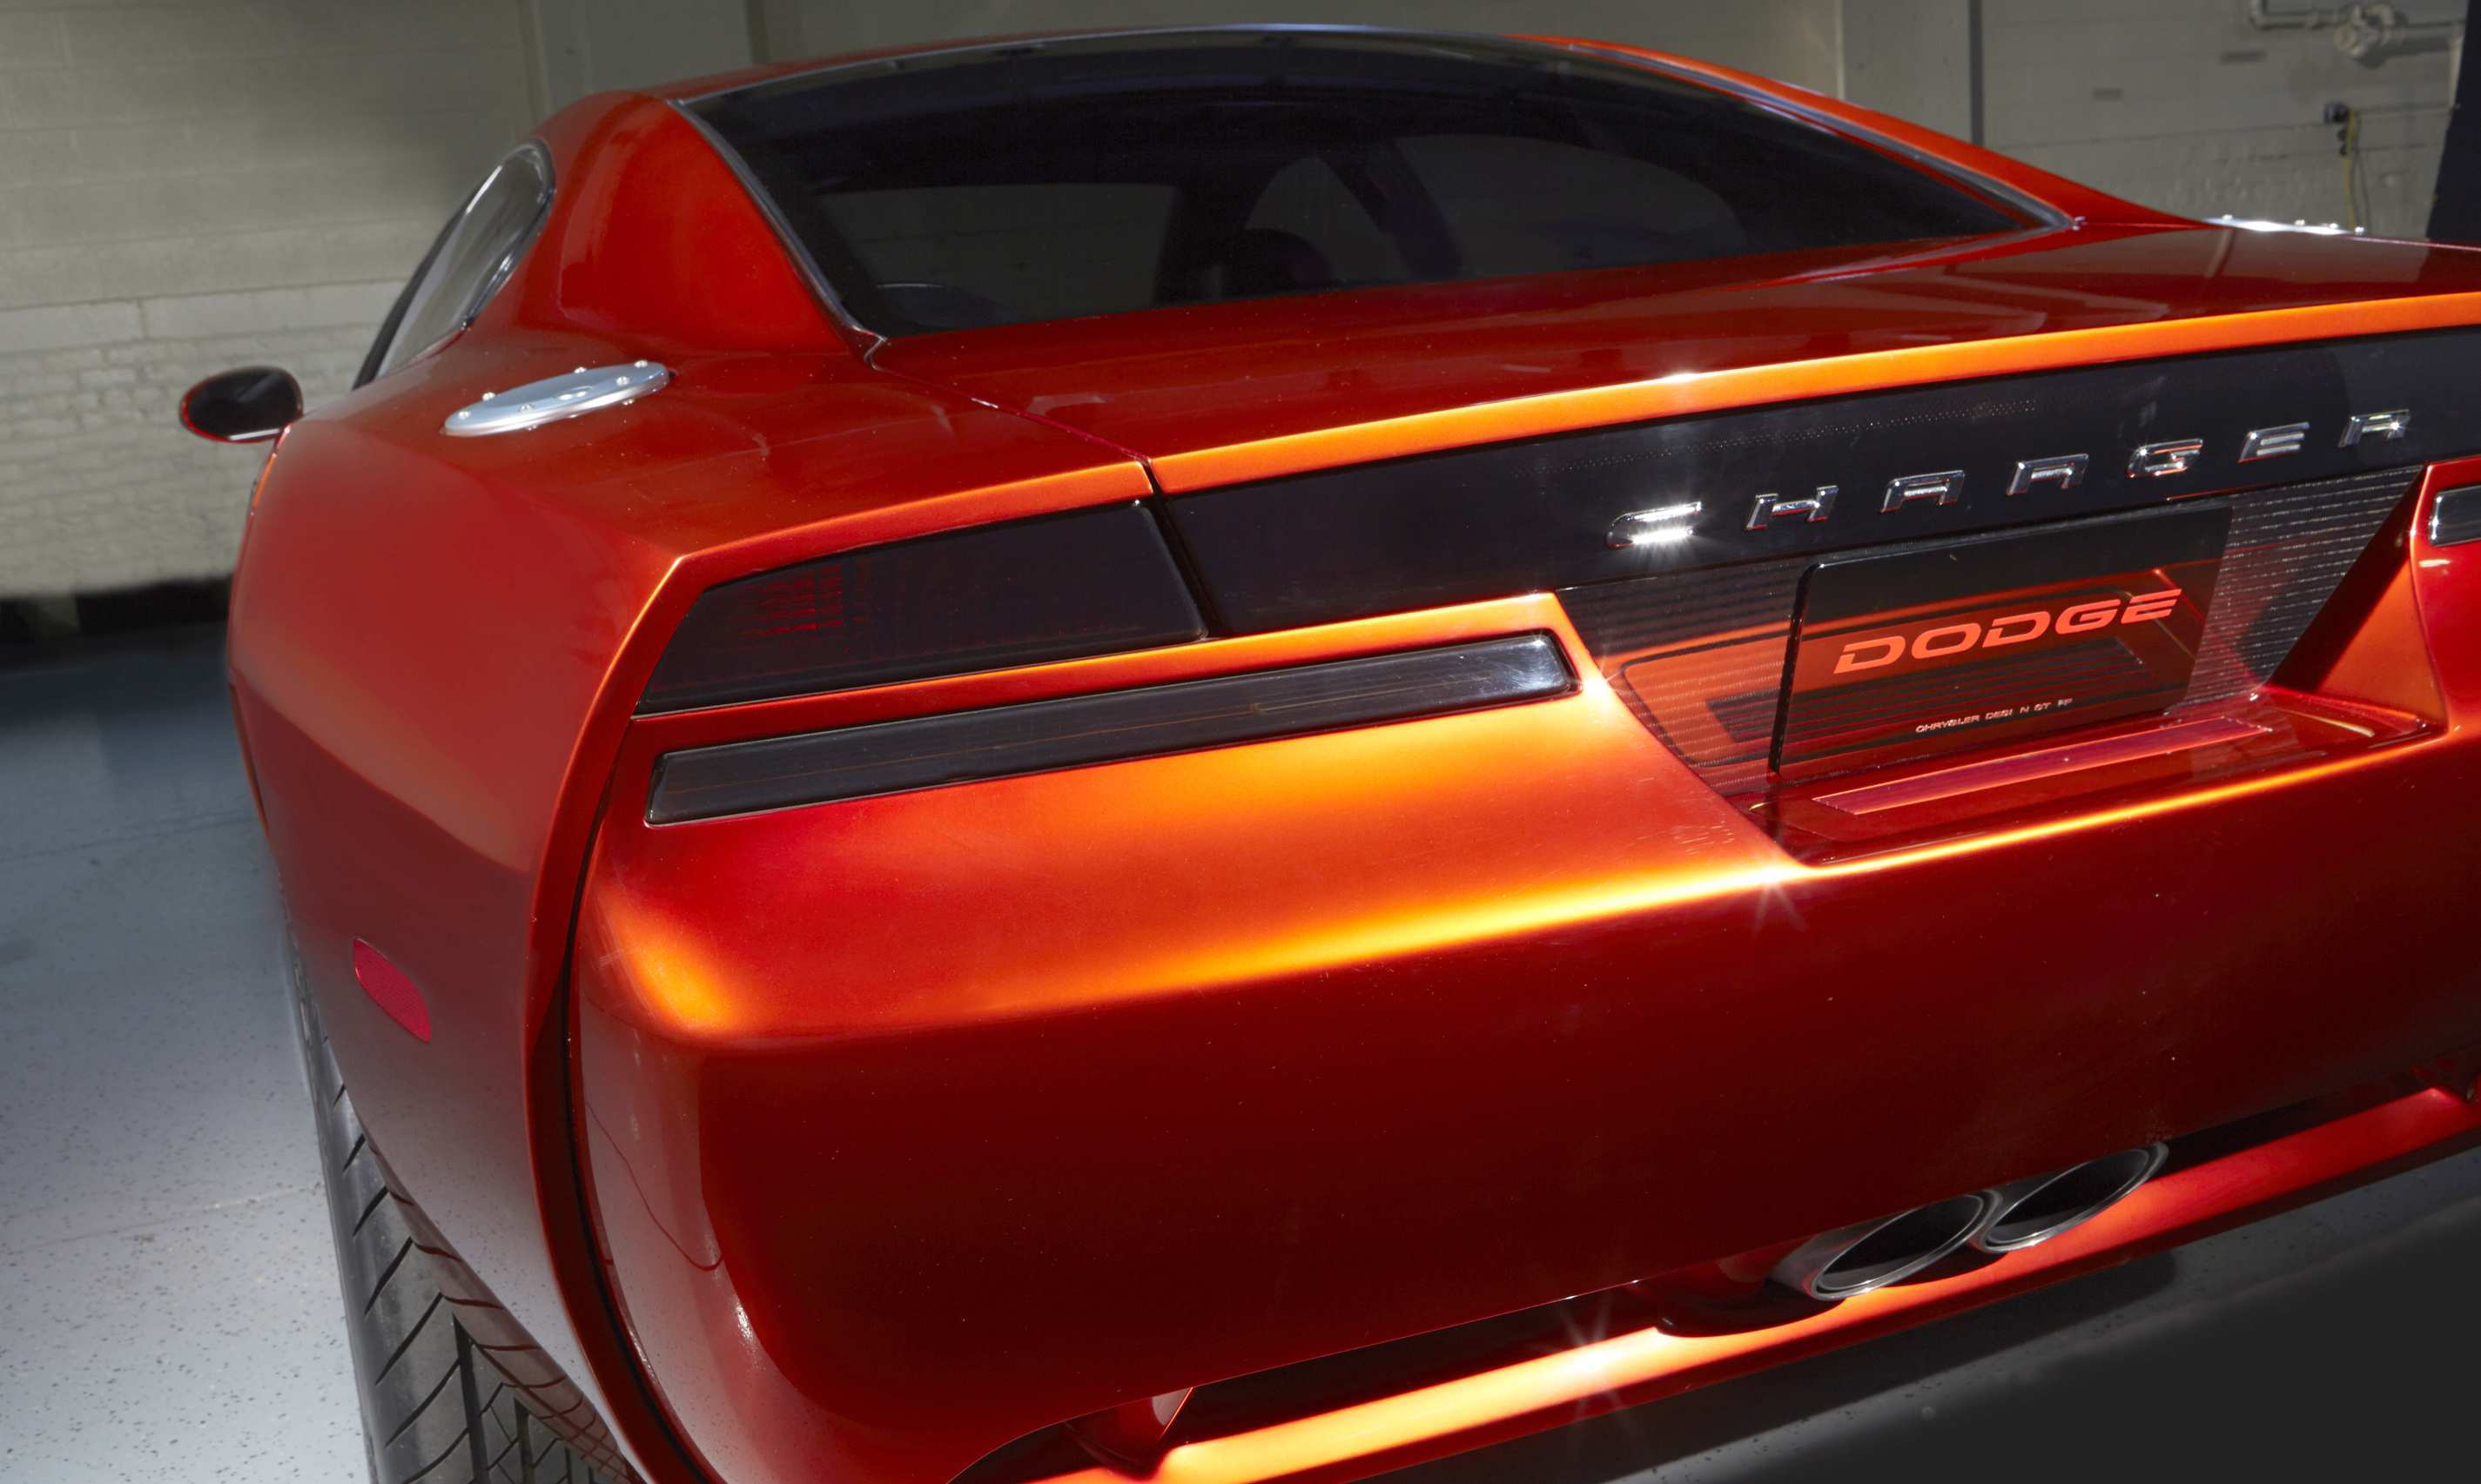 69 New 2020 Dodge Charger Interior Performance